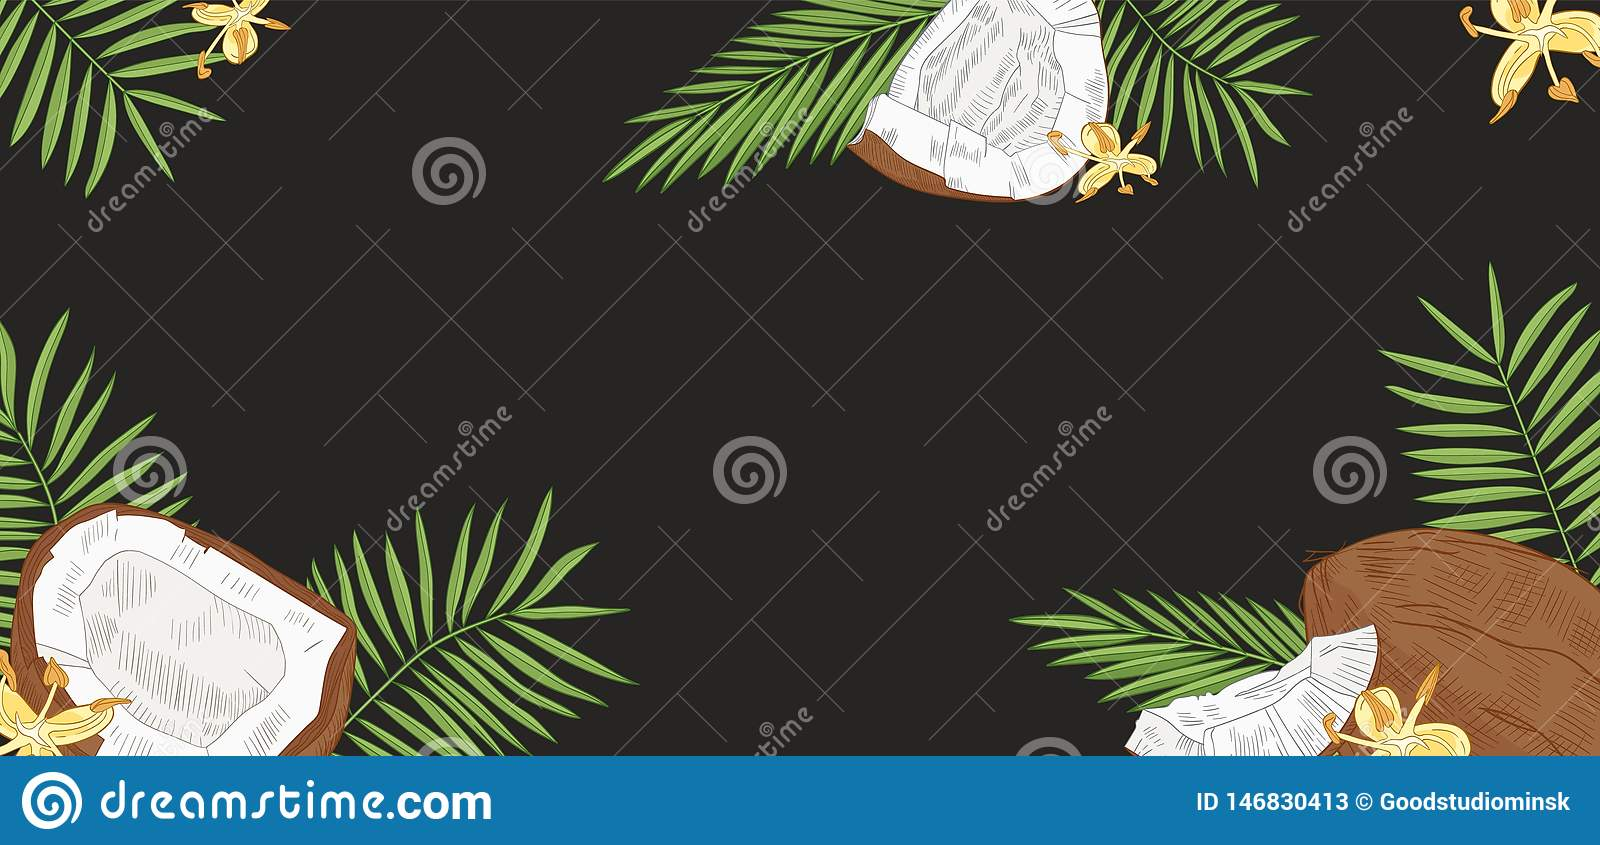 Elegant horizontal background with coconuts, palm tree leaves and flowers on black background. Backdrop with fresh